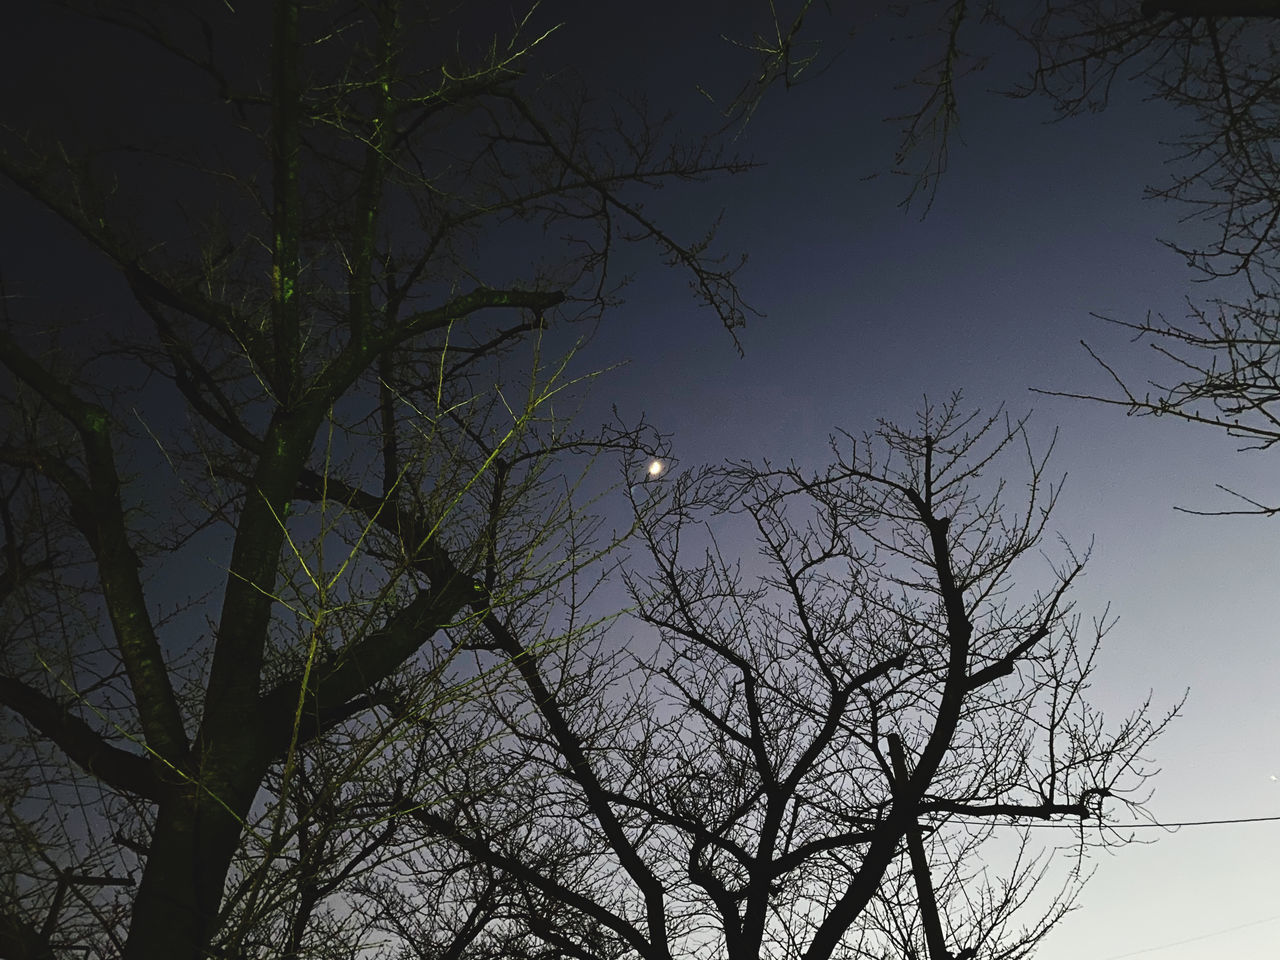 LOW ANGLE VIEW OF SILHOUETTE BARE TREE AGAINST SKY AT NIGHT